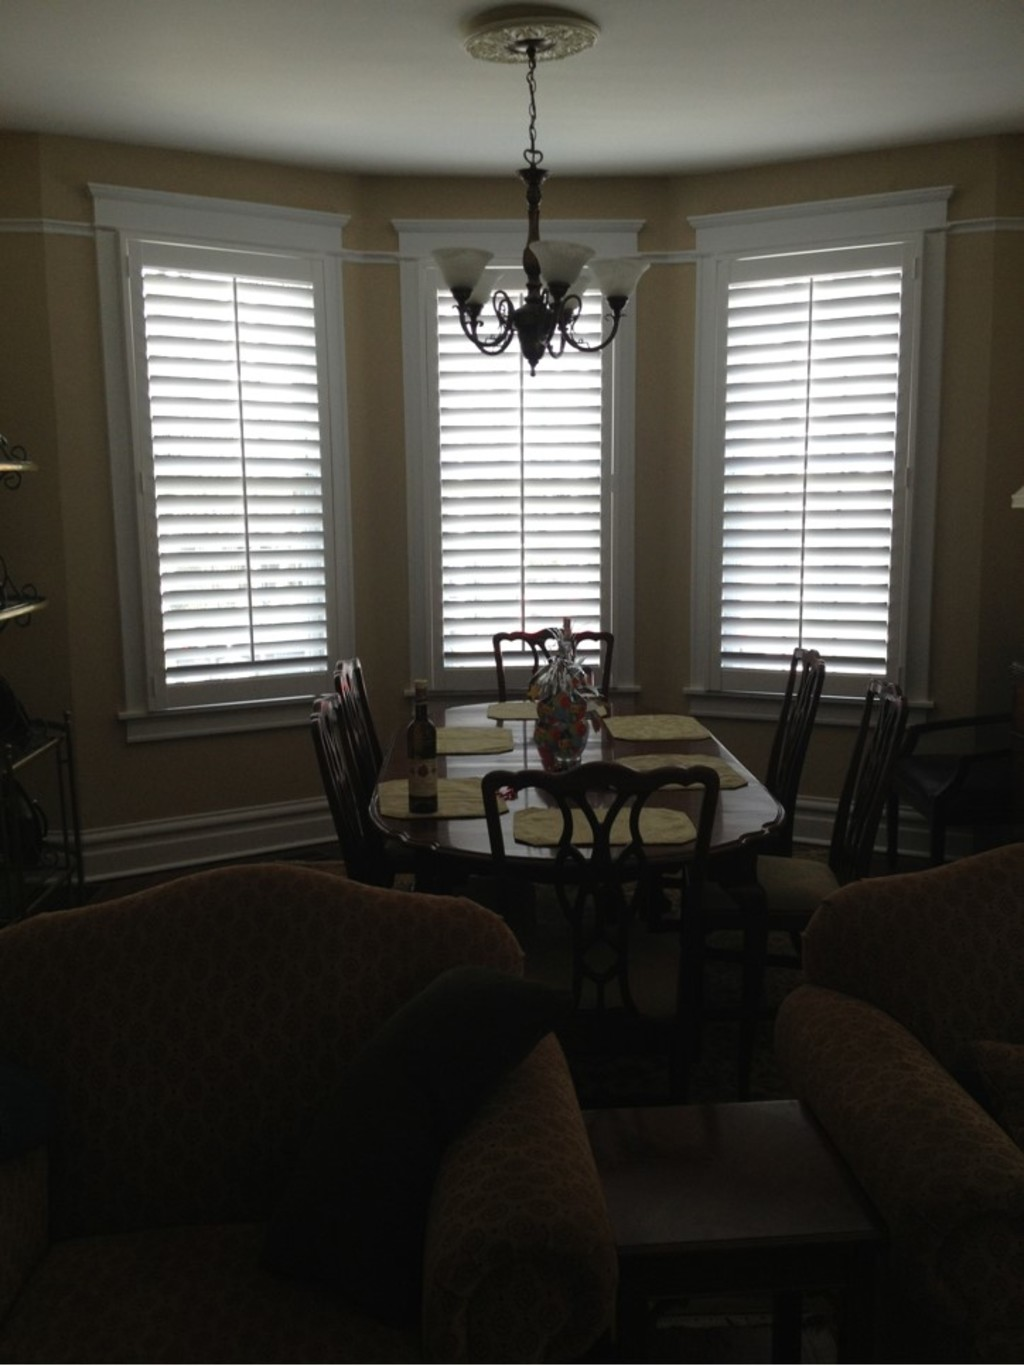 Blind Designs - Choose Plantation Shutters